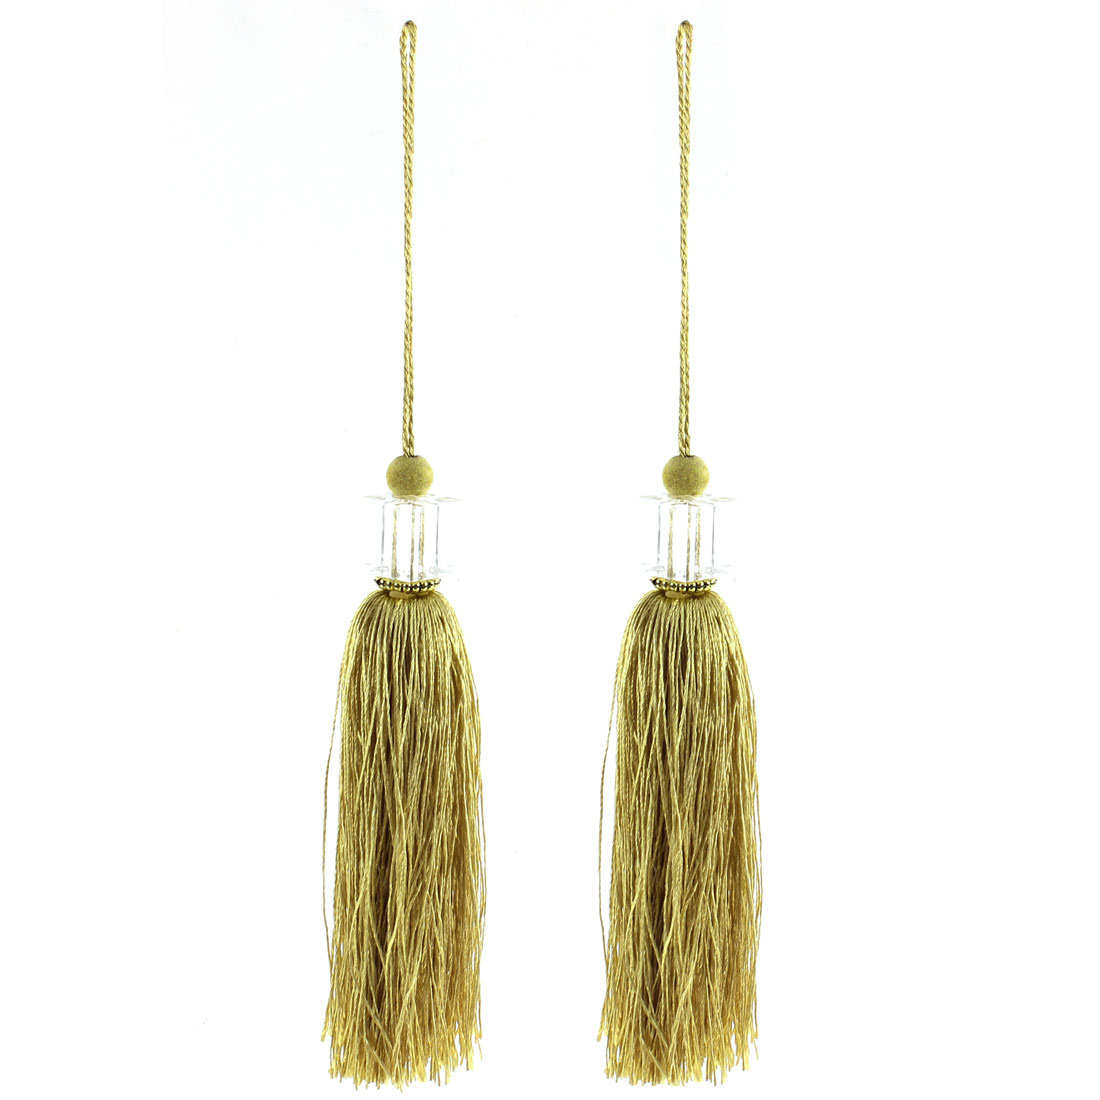 2Pcs Silky Tassels Pendant Sewing DIY Craft Supply Curtain Drapery Deco Grass Yellow